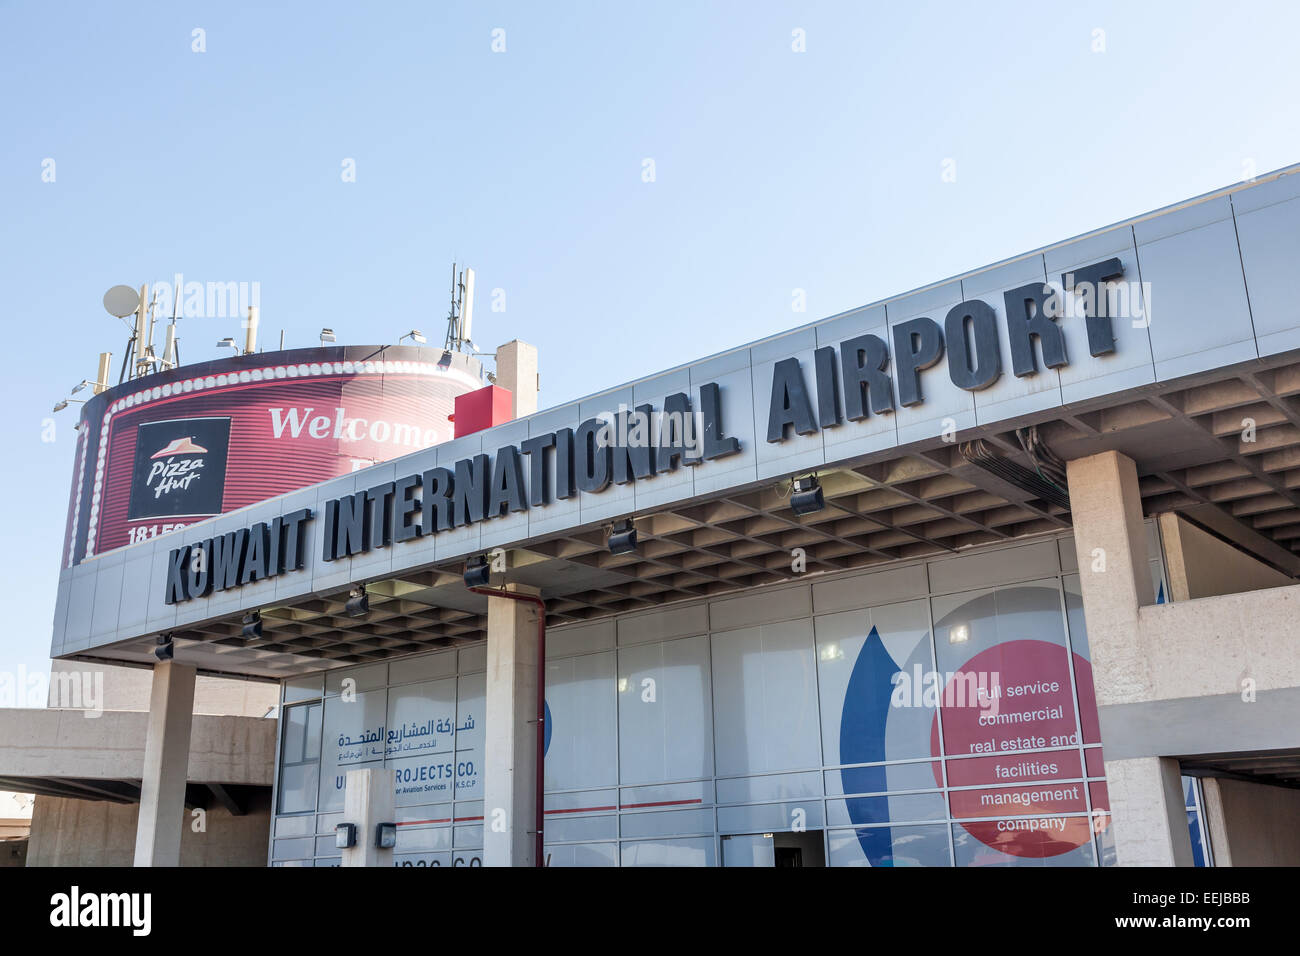 Exterior of the Kuwait International Airport - Stock Image